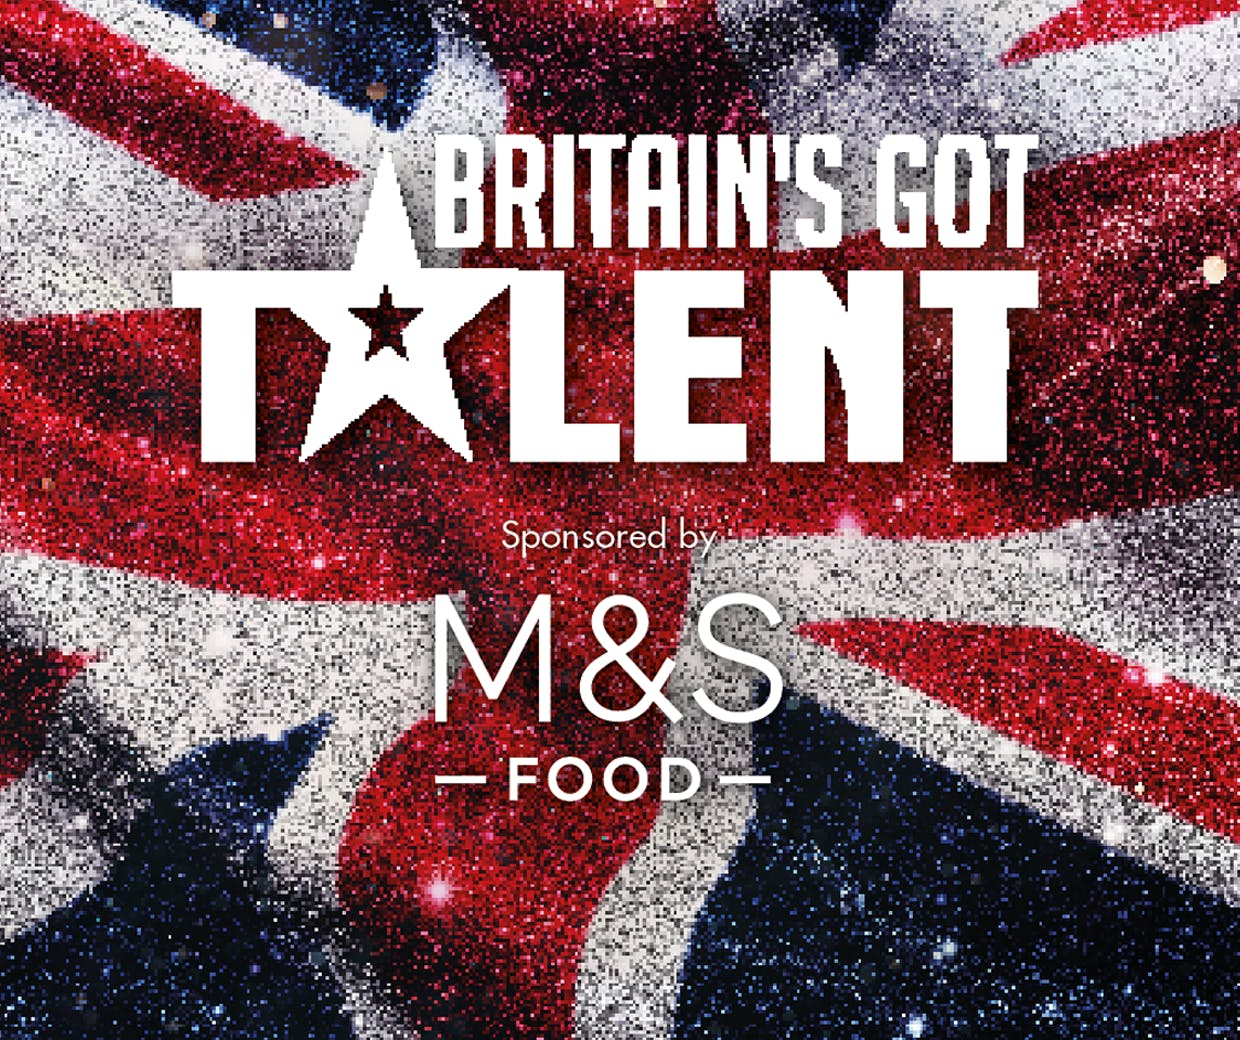 M&S Britain's Got Talent sponsorship